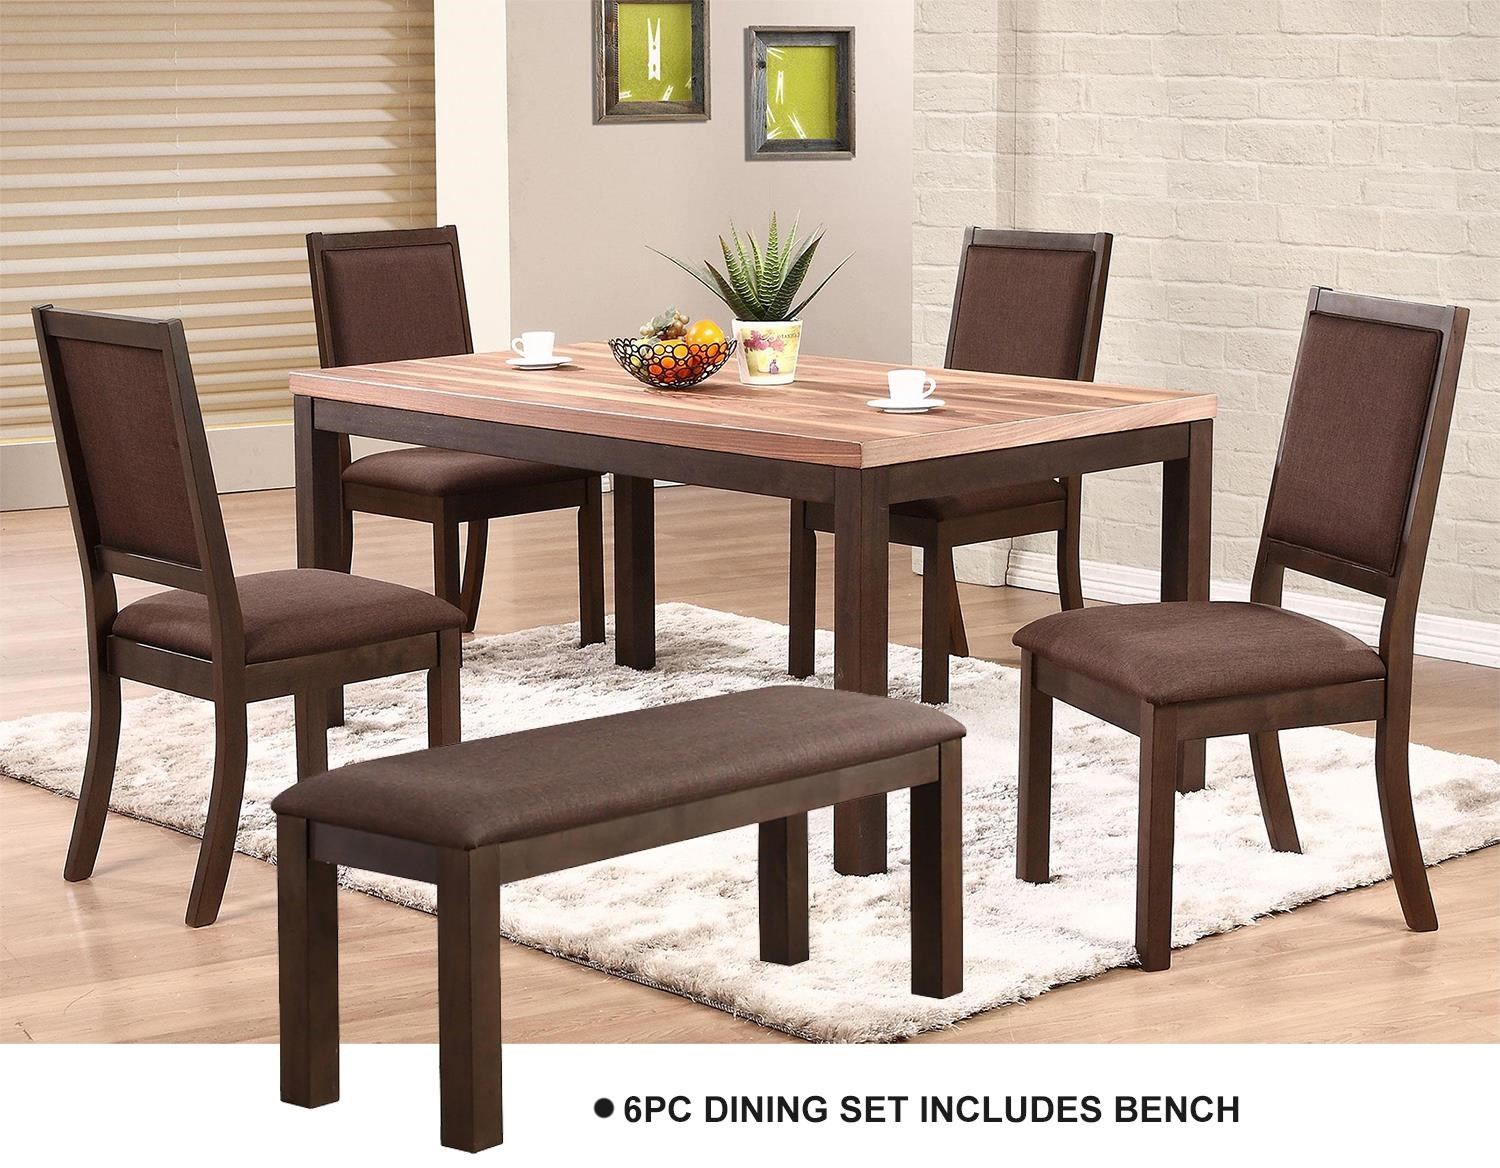 Corsica 6 Piece Dining Room Set at Rotmans